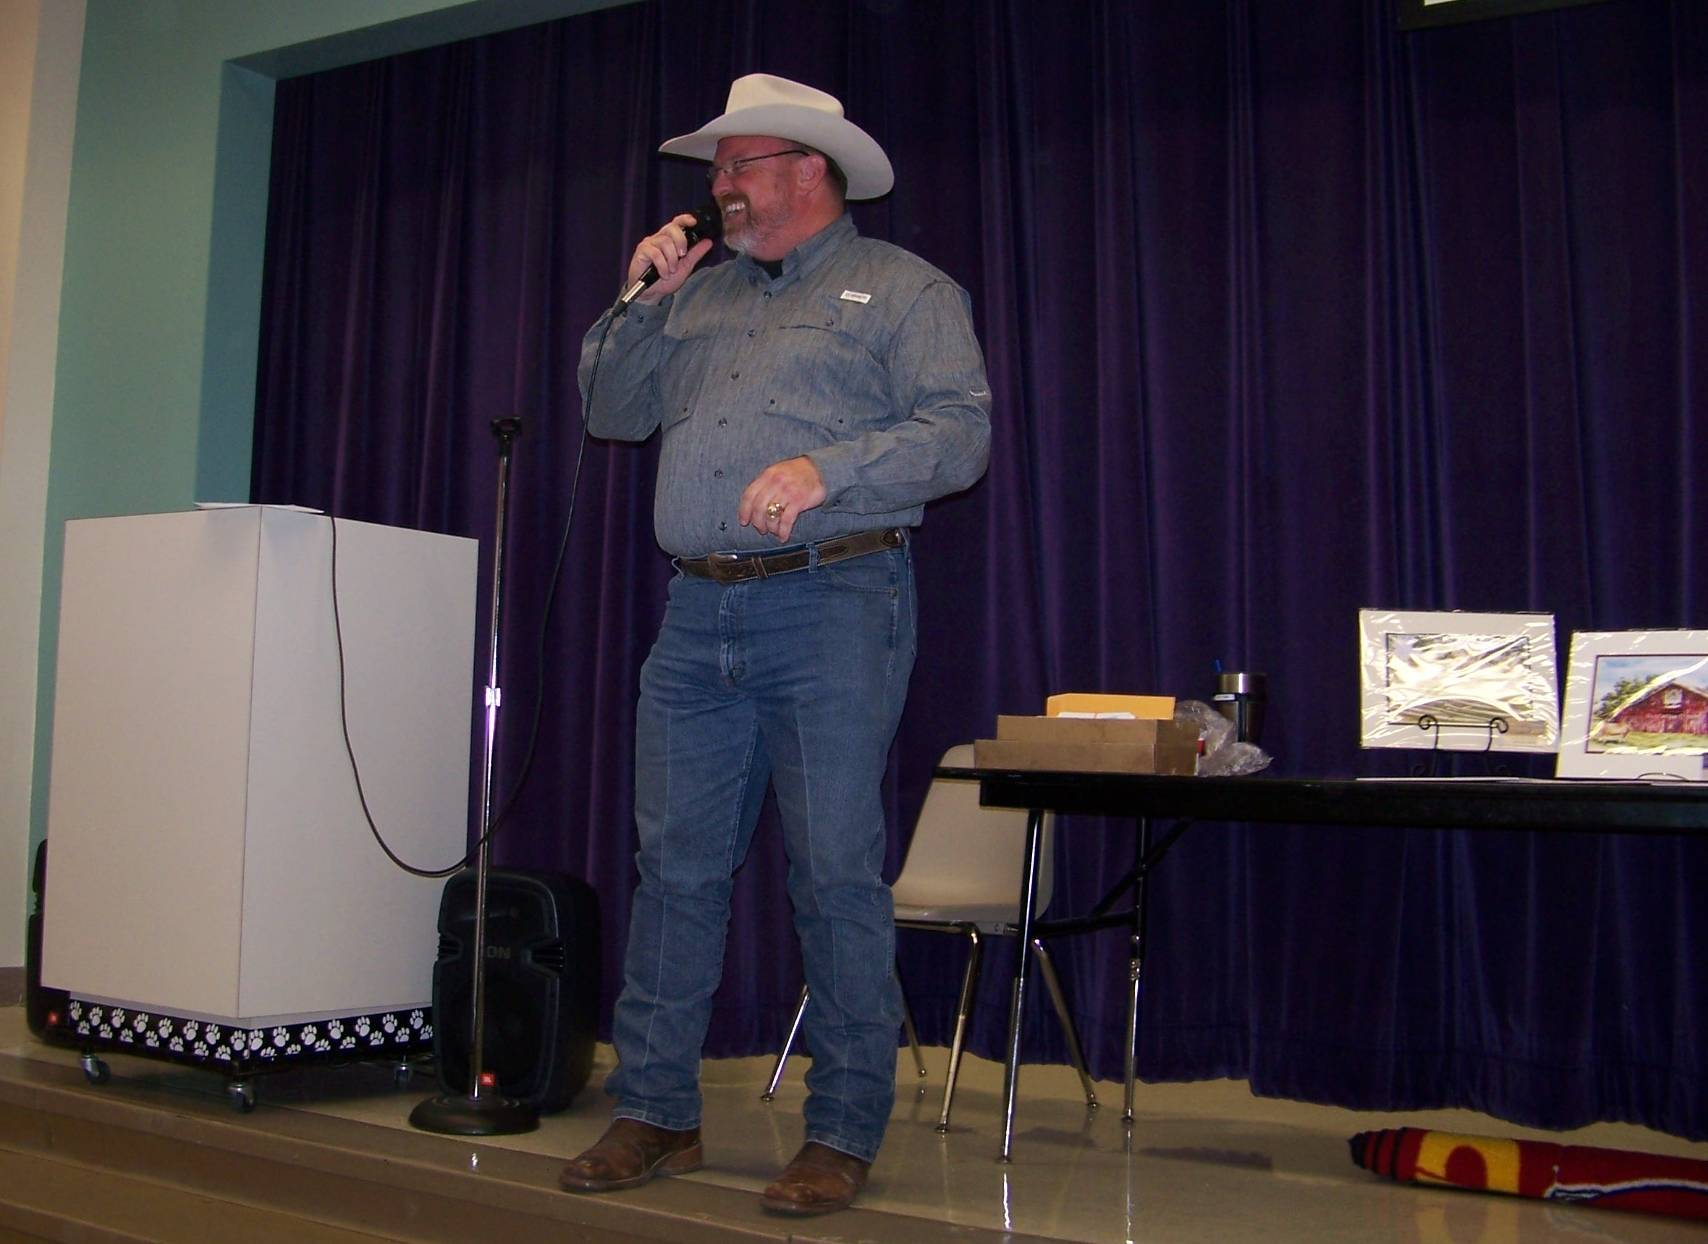 Auctioneer Bobbly Whitson